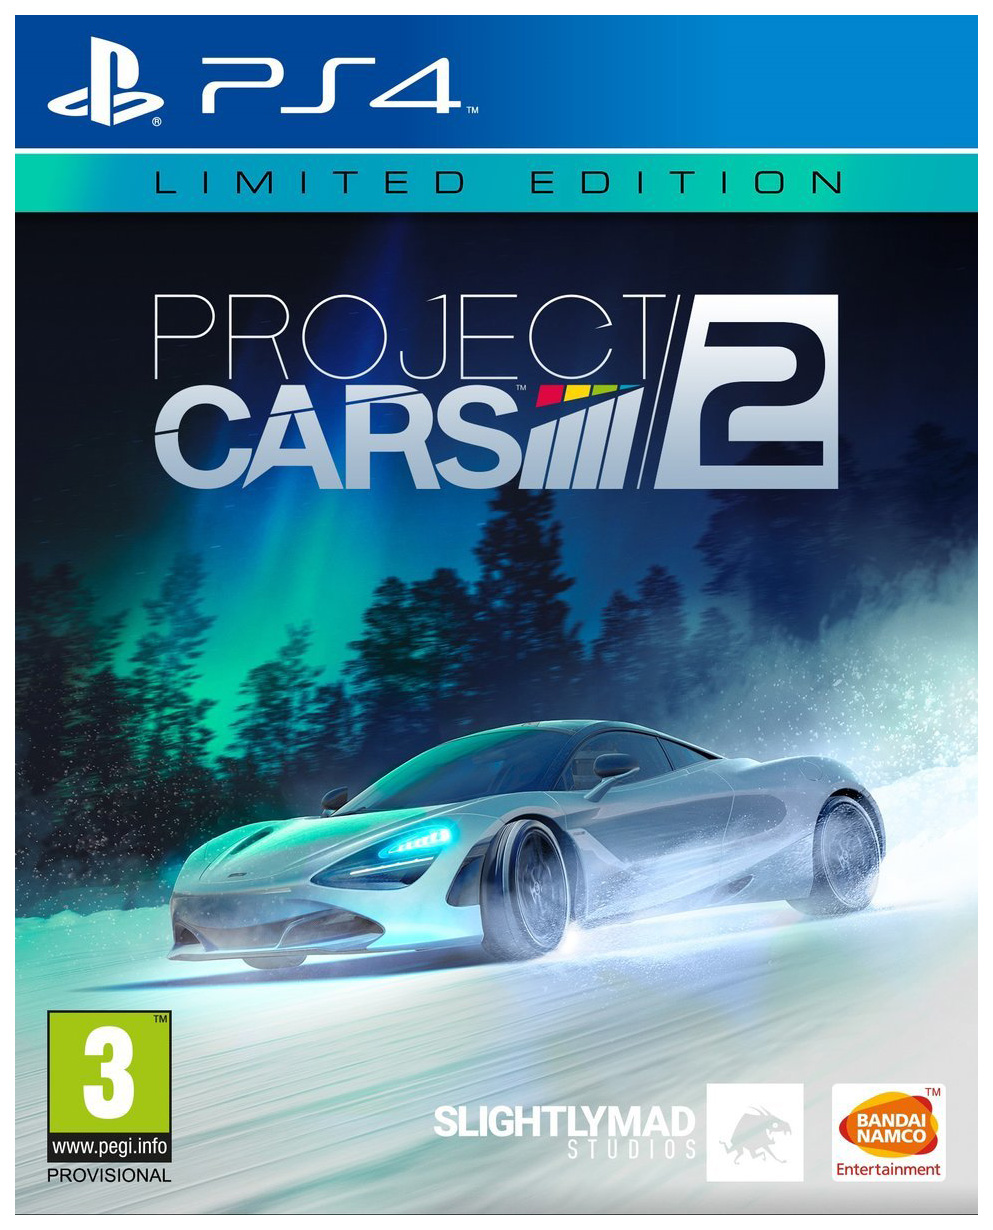 SLIGHTLY MAD STUDIOS PROJECT CARS 2. LIMITED EDITION